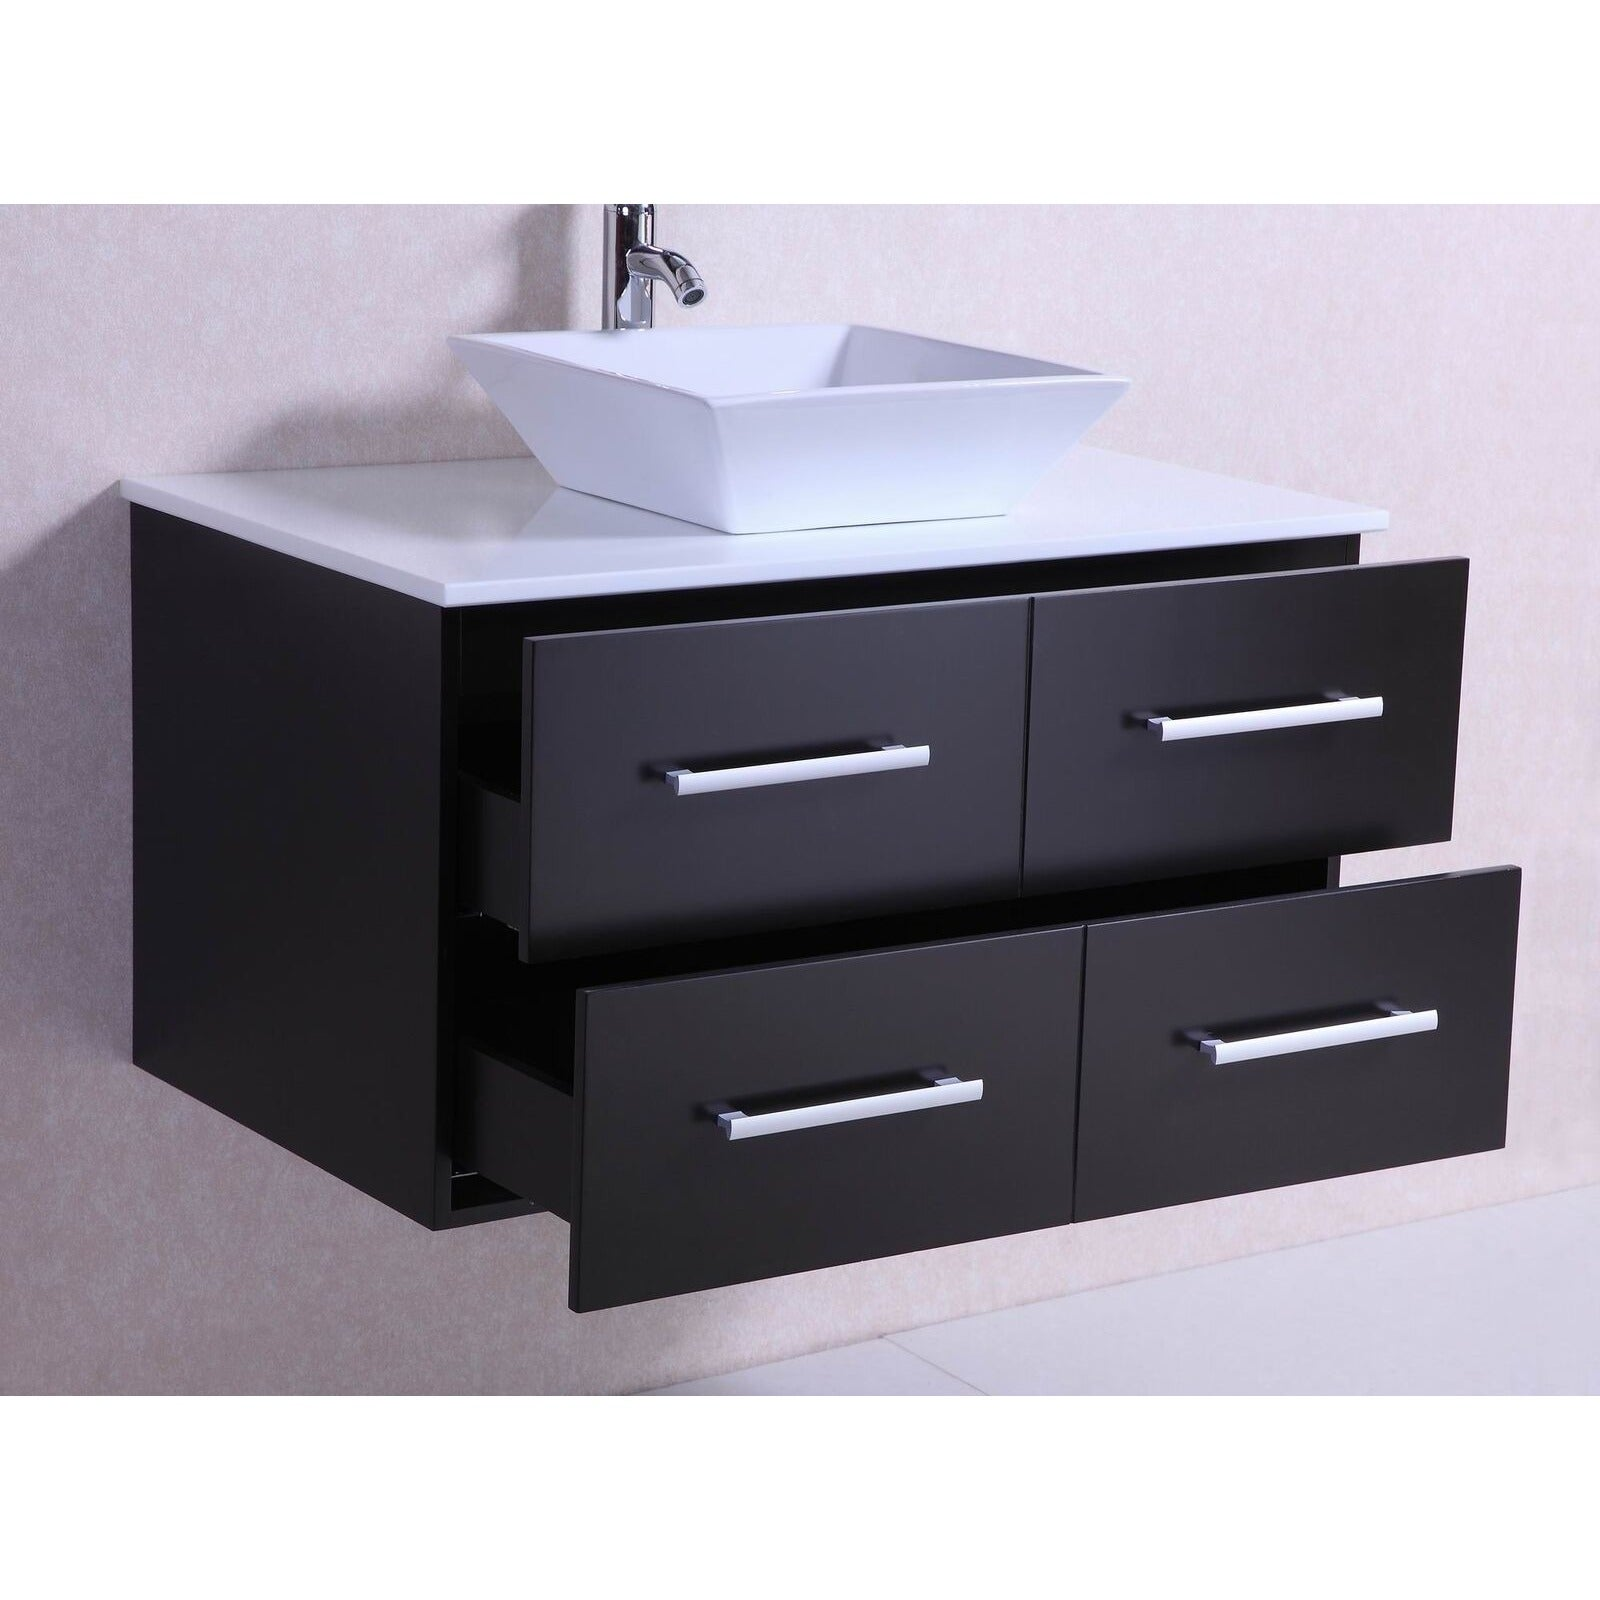 Shop 36-inch Belvedere Modern Wall Mounted Espresso Bathroom Vanity ...